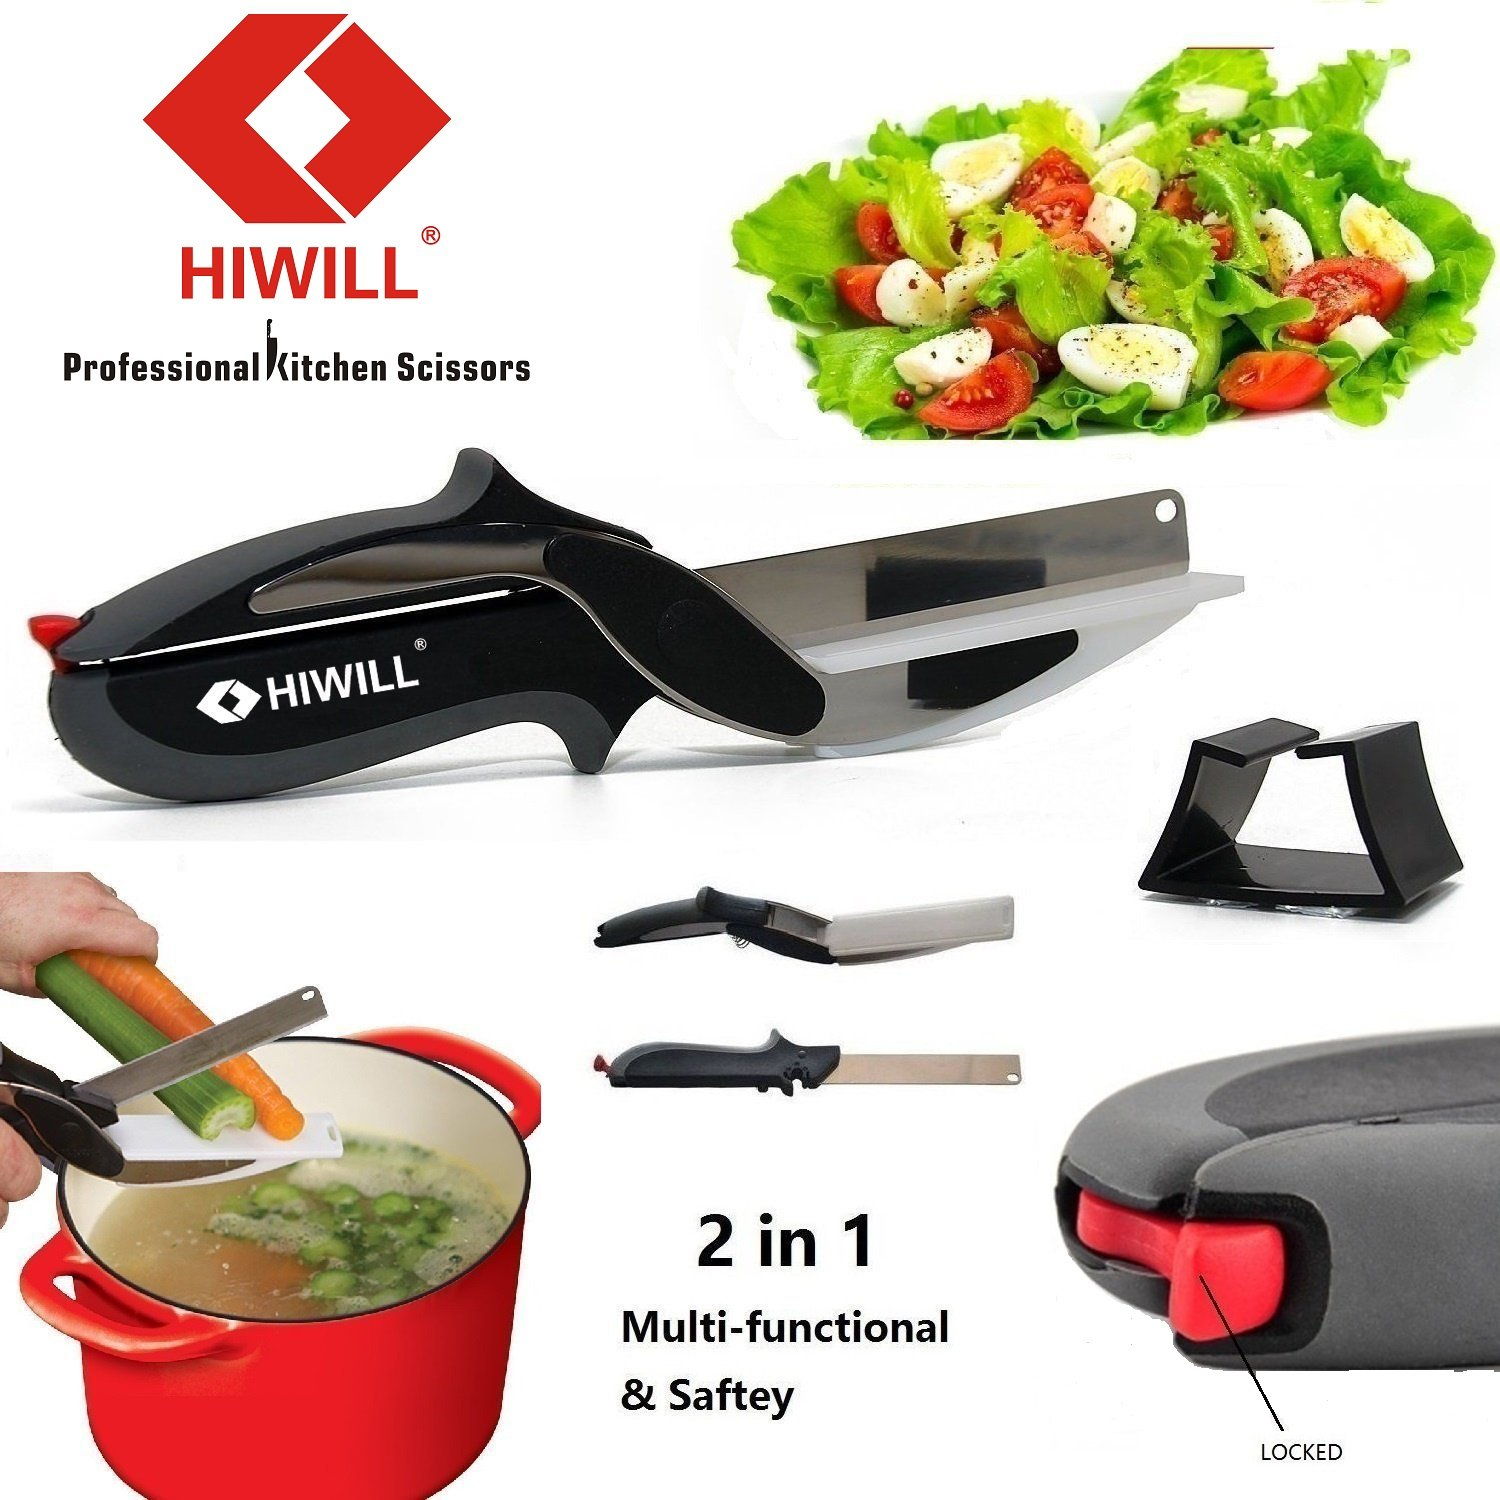 Hiwill 2-in-1 Knife & Cutting Board Kitchen Scissors – Stainless Steel Cutter for Vegetable & Meat HW